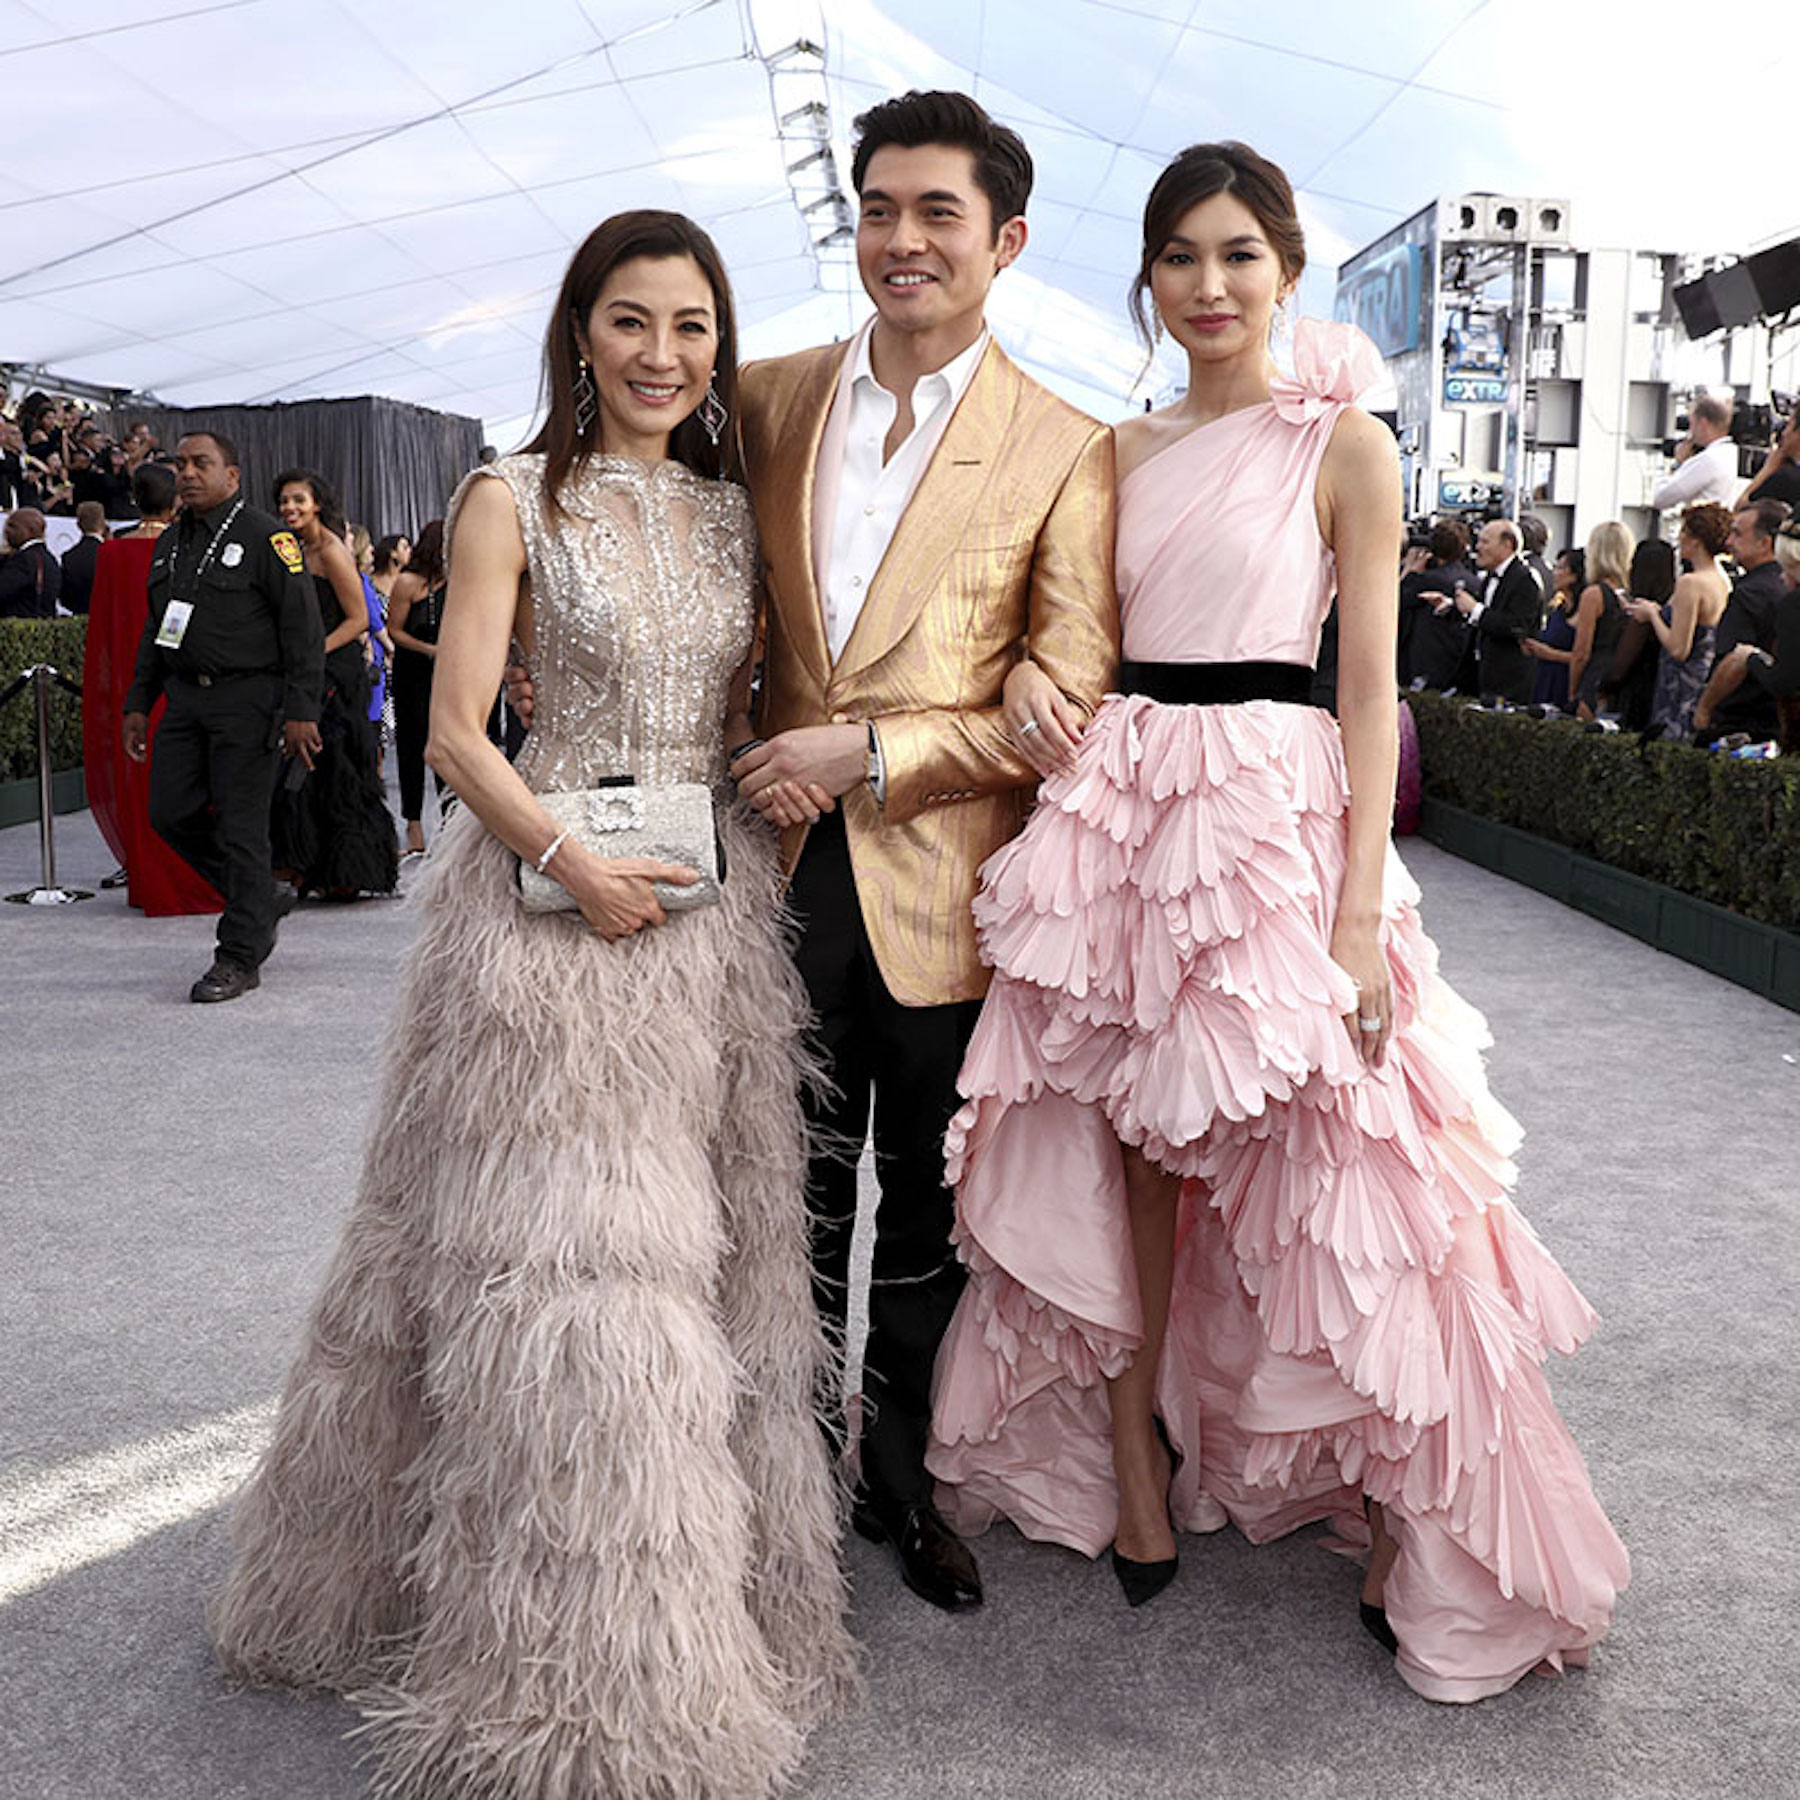 "<div class=""meta image-caption""><div class=""origin-logo origin-image ap""><span>AP</span></div><span class=""caption-text"">Michelle Yeoh, from left, Henry Golding and Gemma Chan arrive at the 25th annual Screen Actors Guild Awards at the Shrine Auditorium & Expo Hall on Sunday, Jan. 27, 2019. (Matt Sayles/Invision/AP)</span></div>"